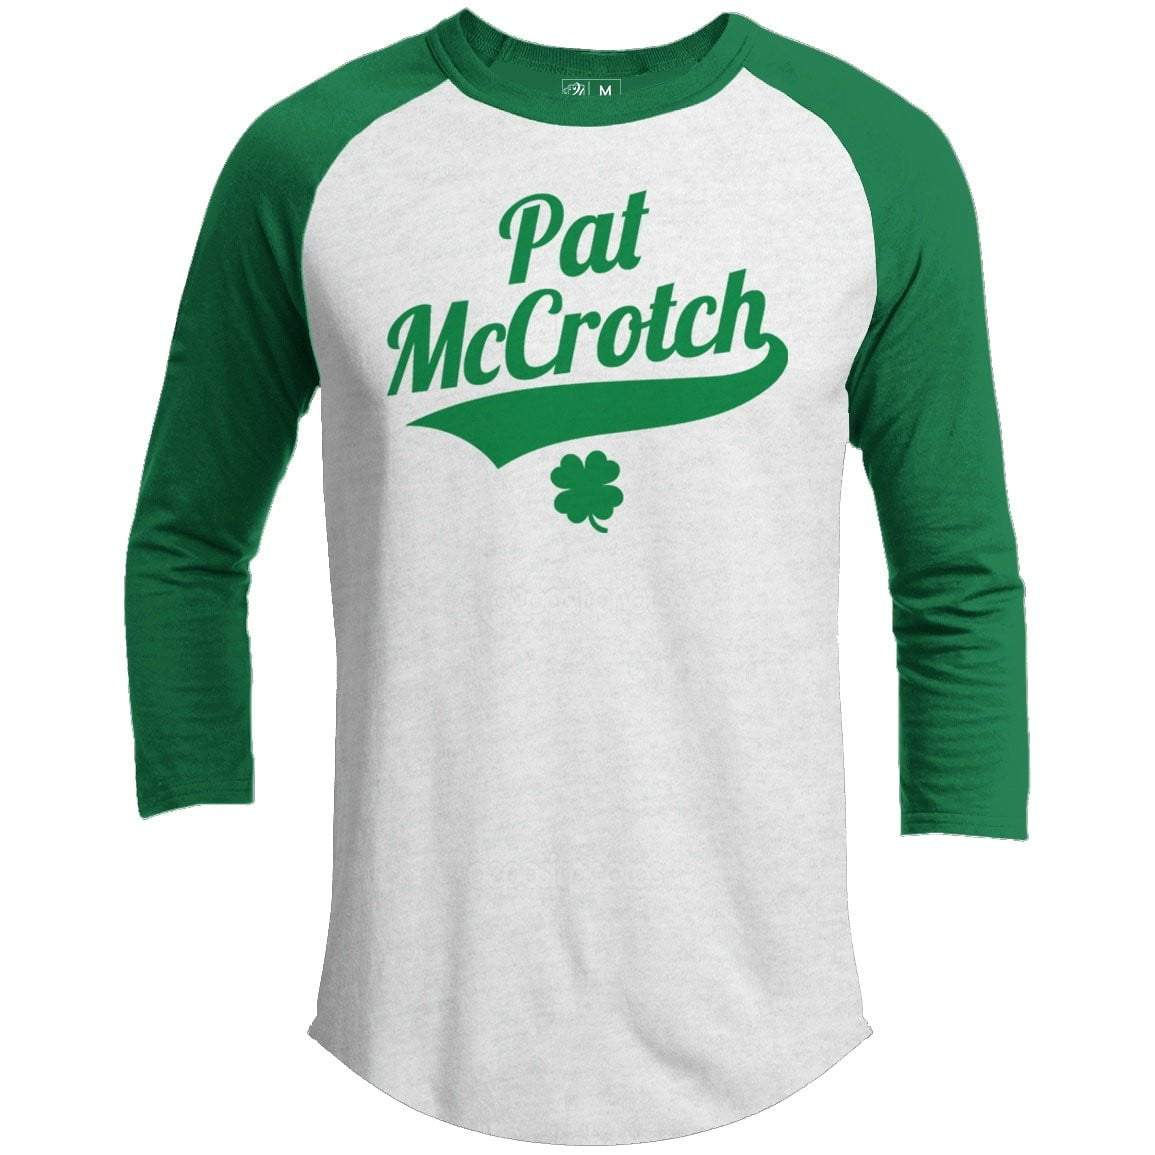 Pat McCrotch St. Patrick's Day Raglan